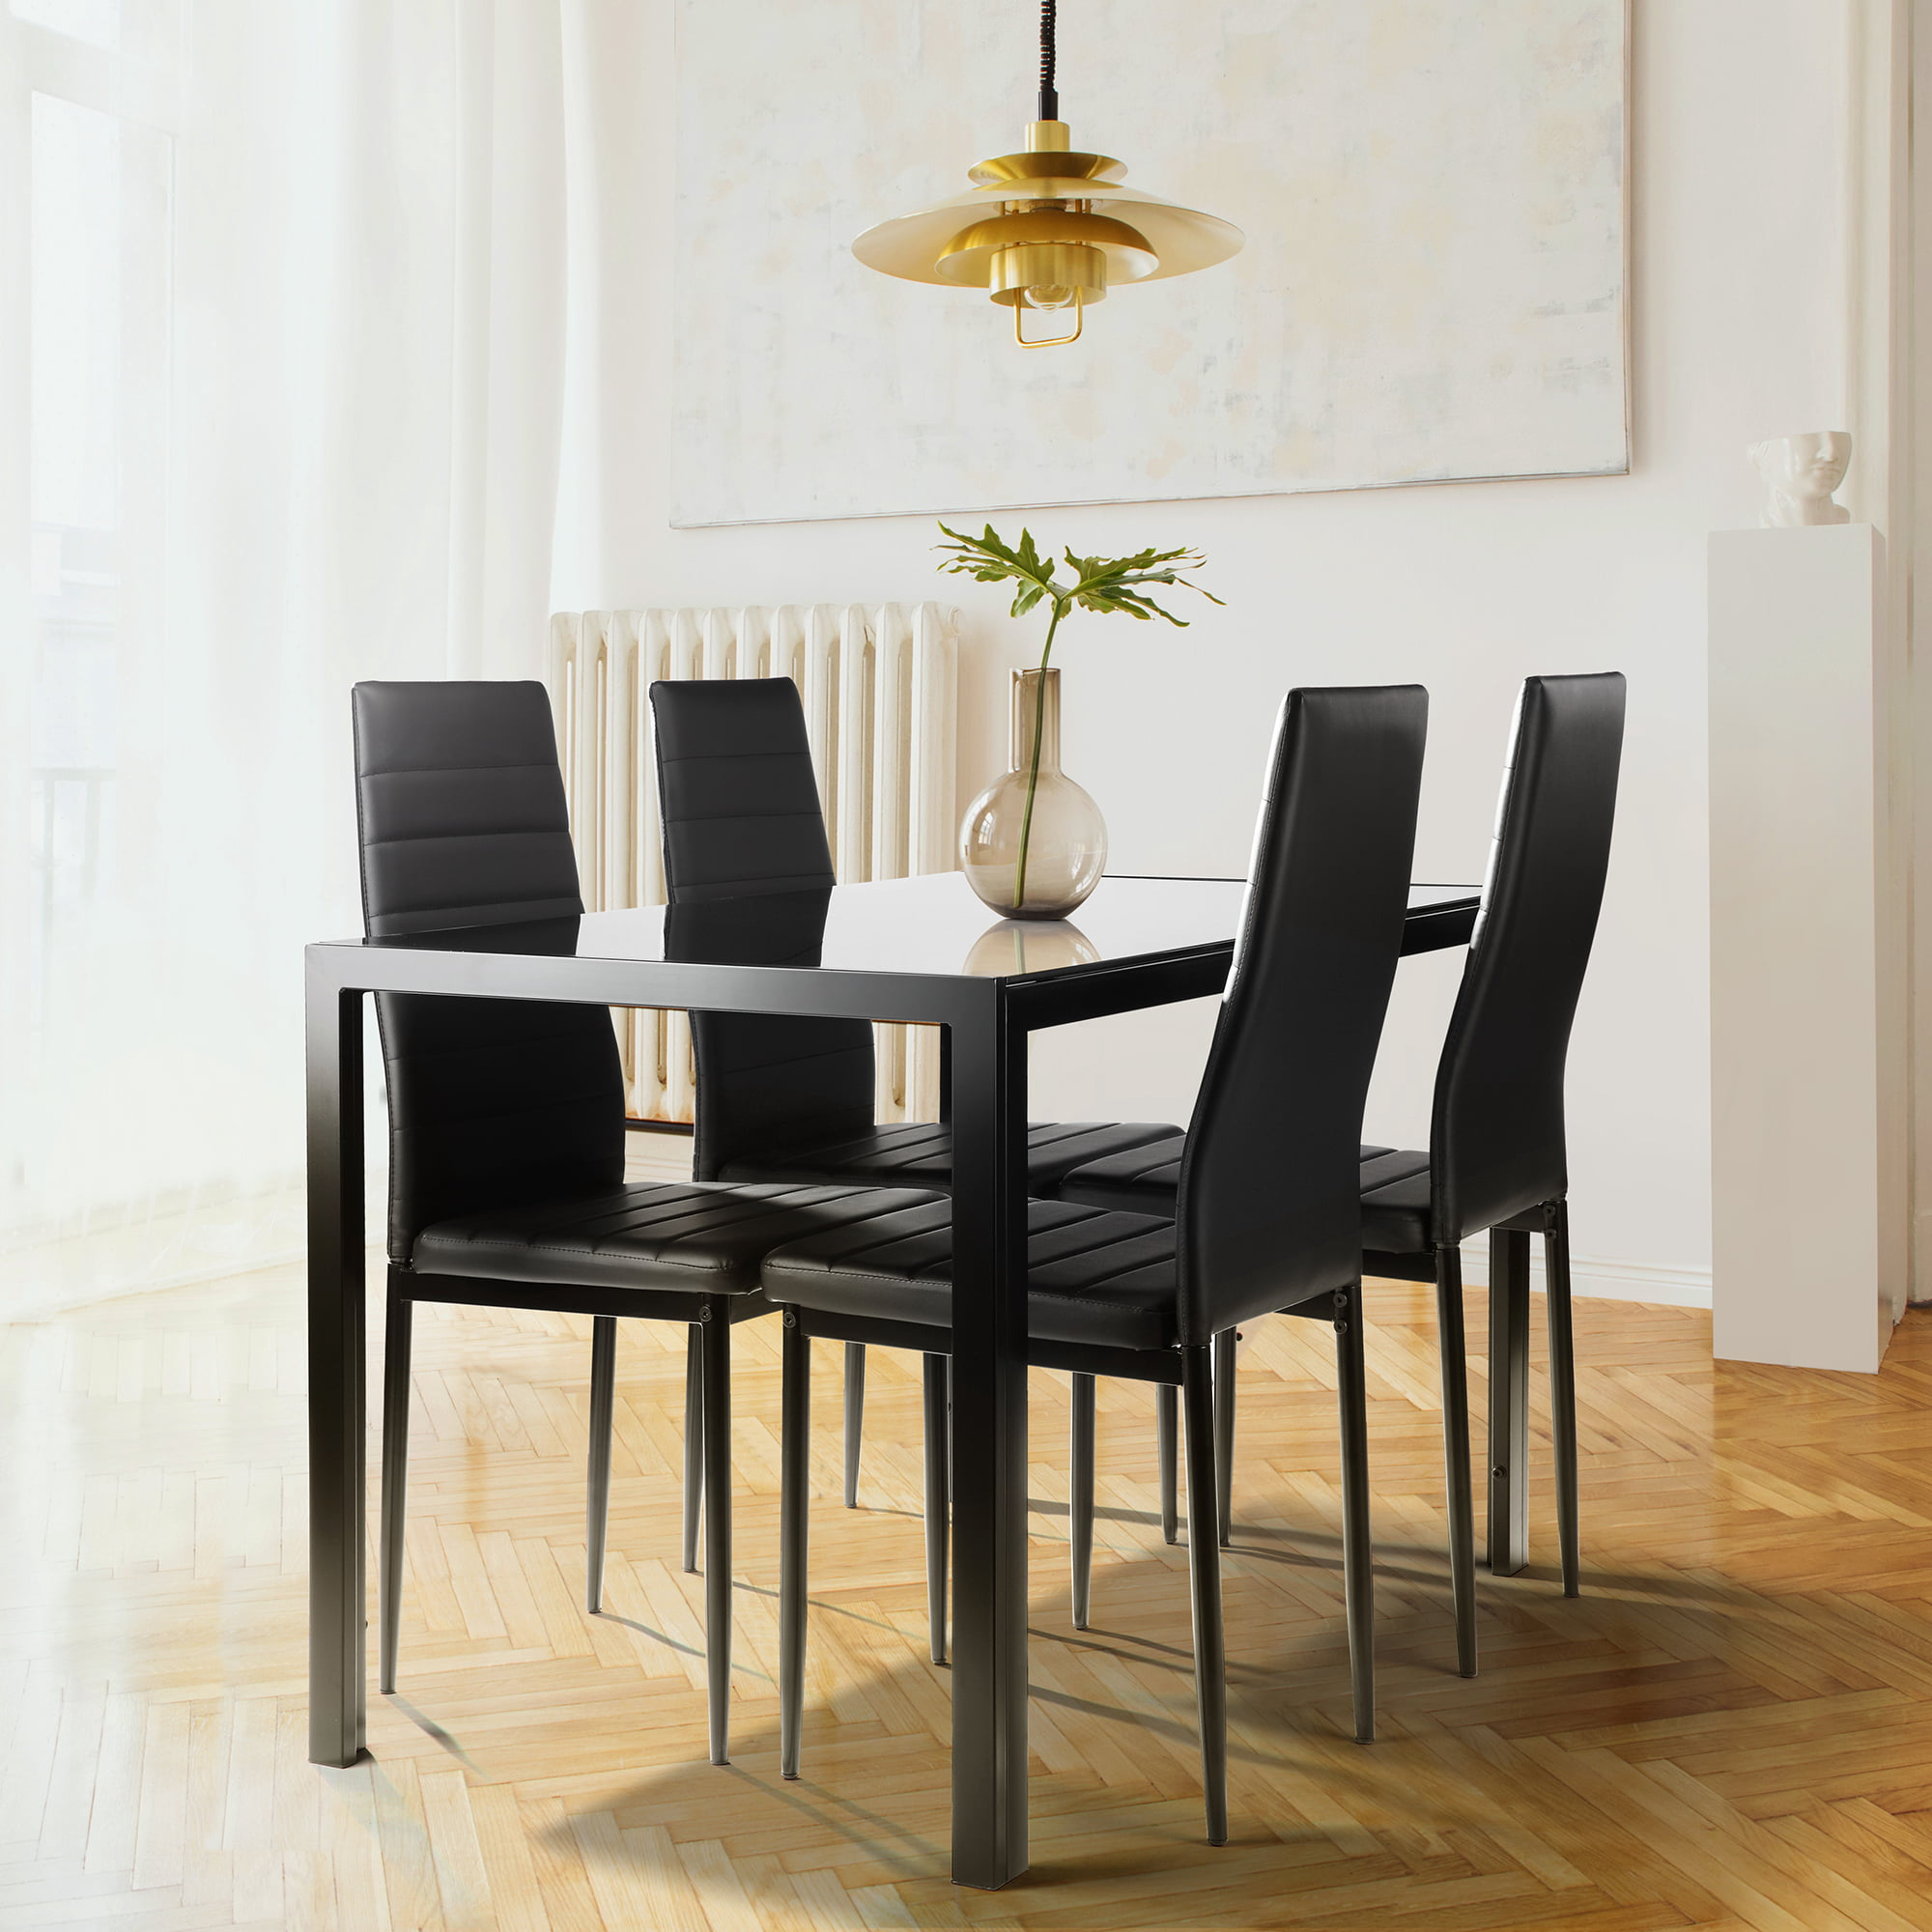 5 Piece Dining Room Table And Chairs, Kitchen Dining Set, Dining Table Set With 4 Chairs, Heavy-Duty Glass Table & Softly Seat, Breakfast Furniture For Dining Room, Living Room, Black, W3112 -